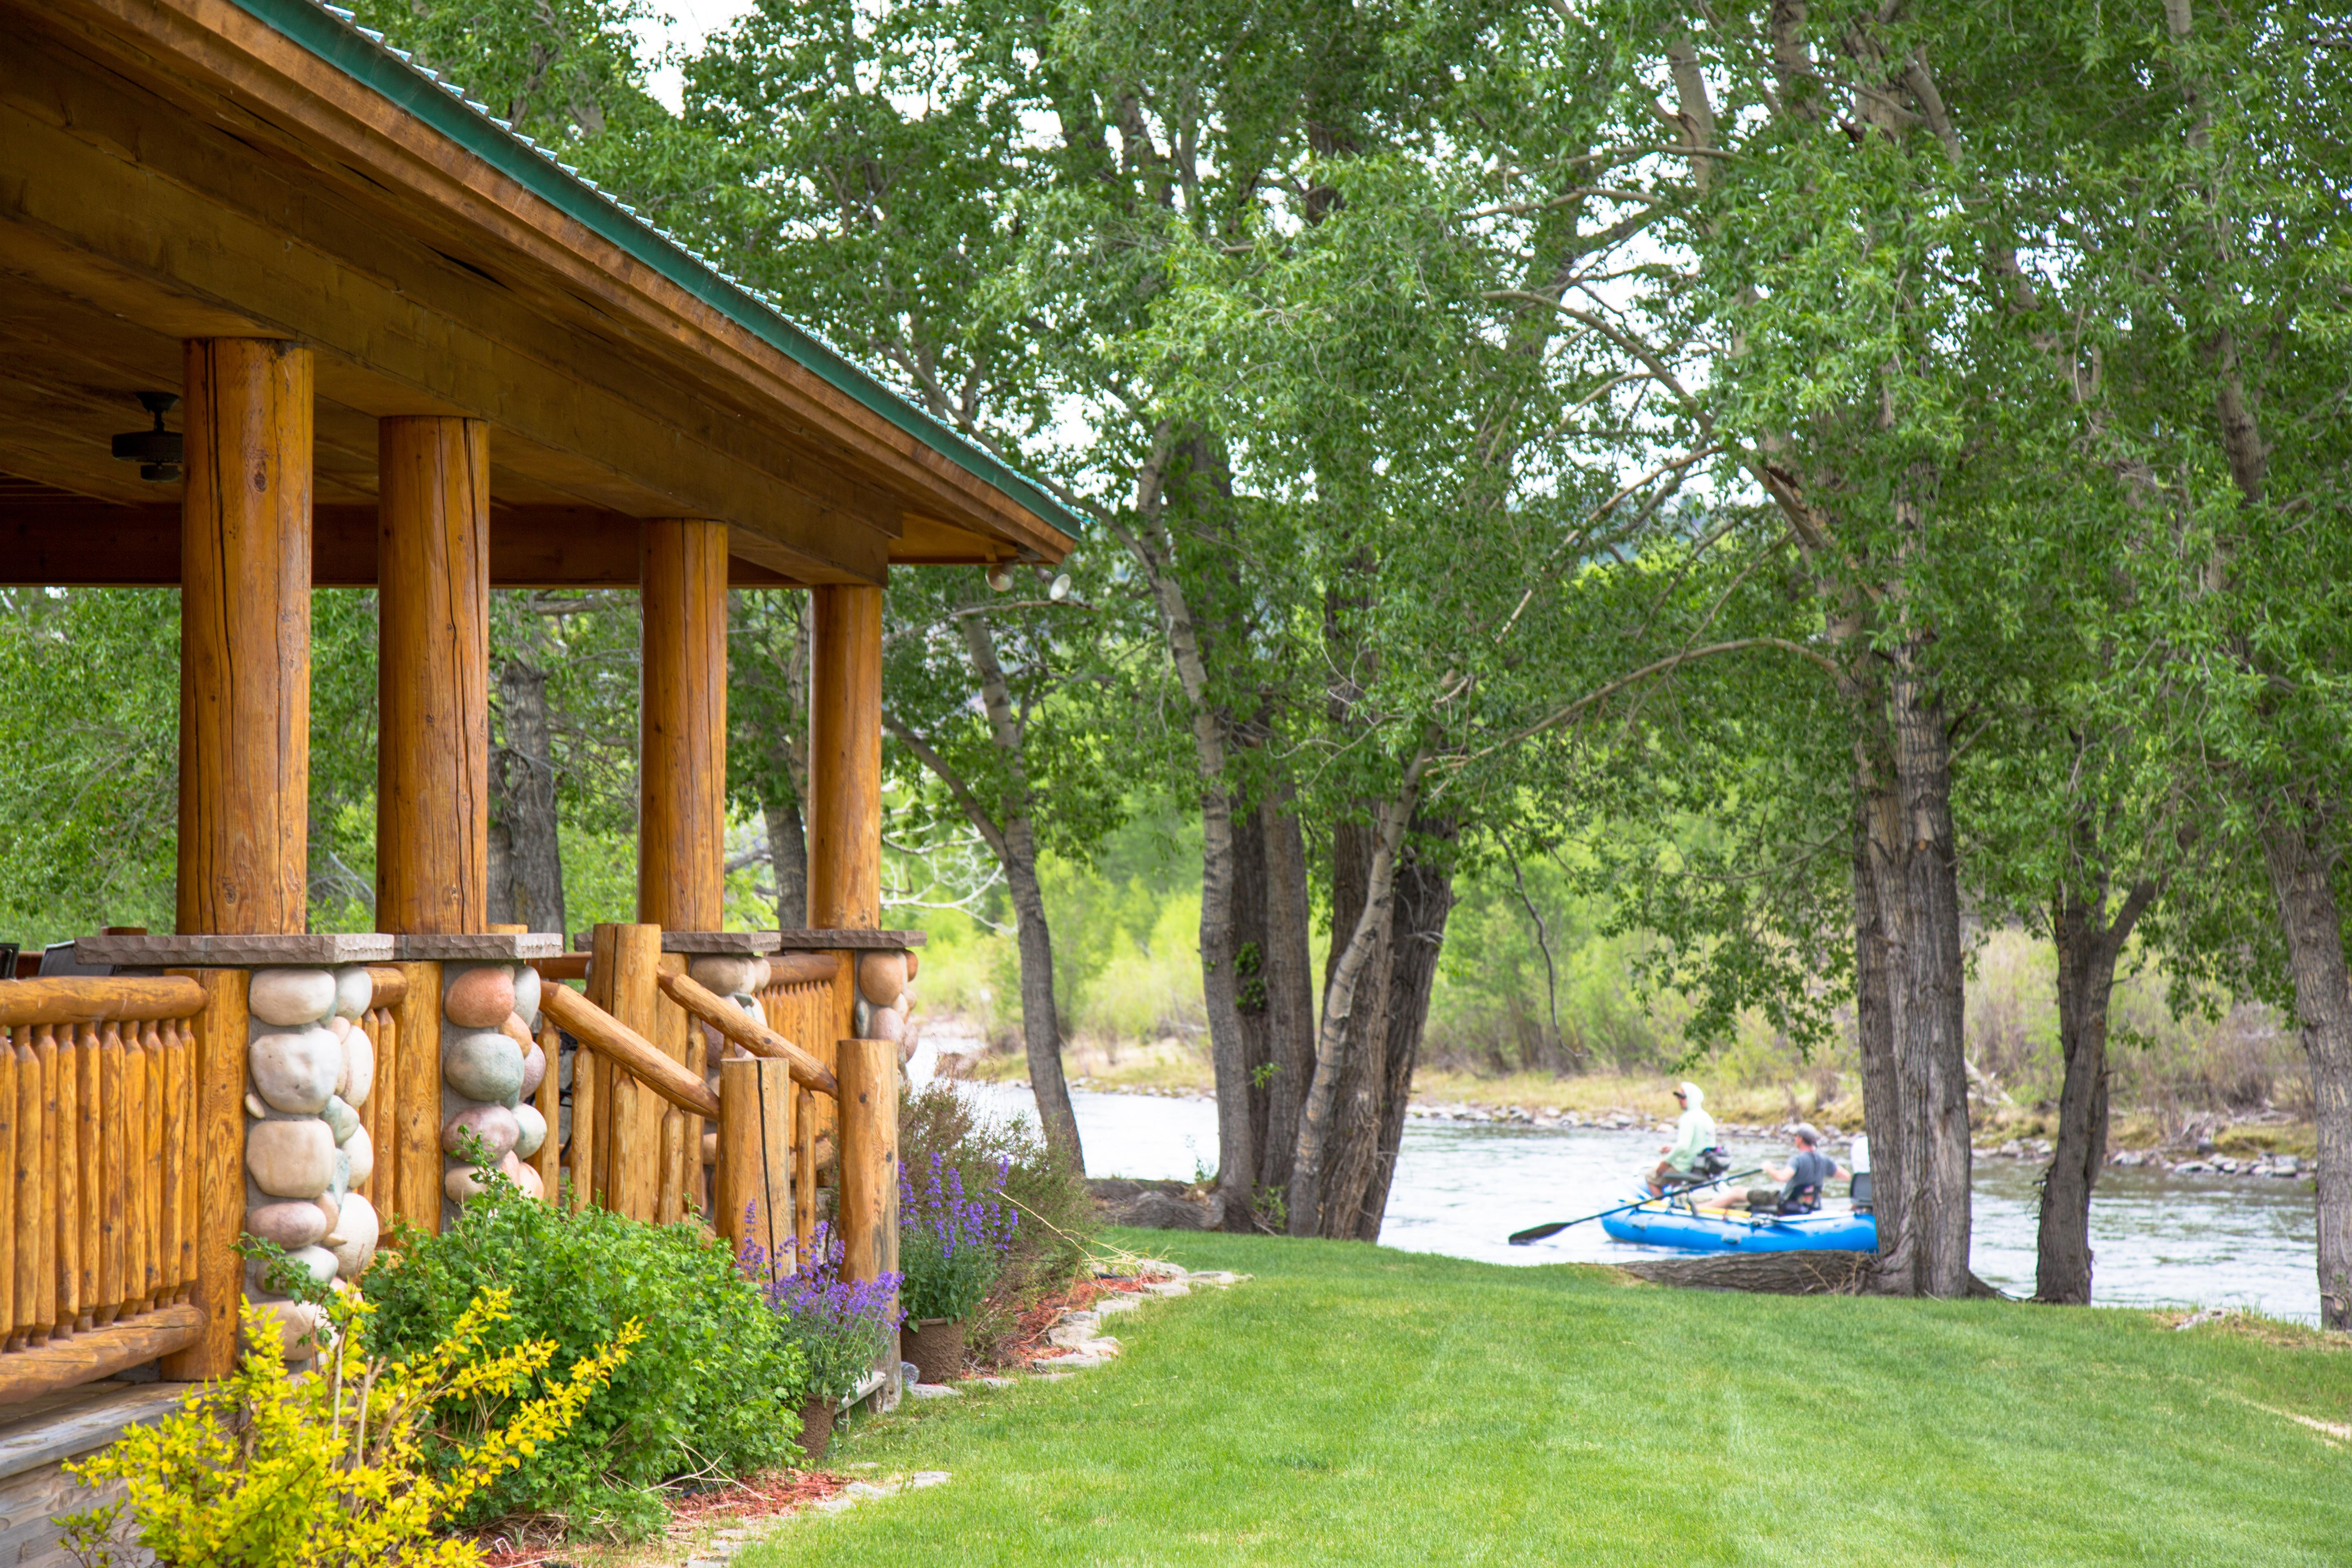 fishing lodge next to gold medal waters on the Rio Grande river